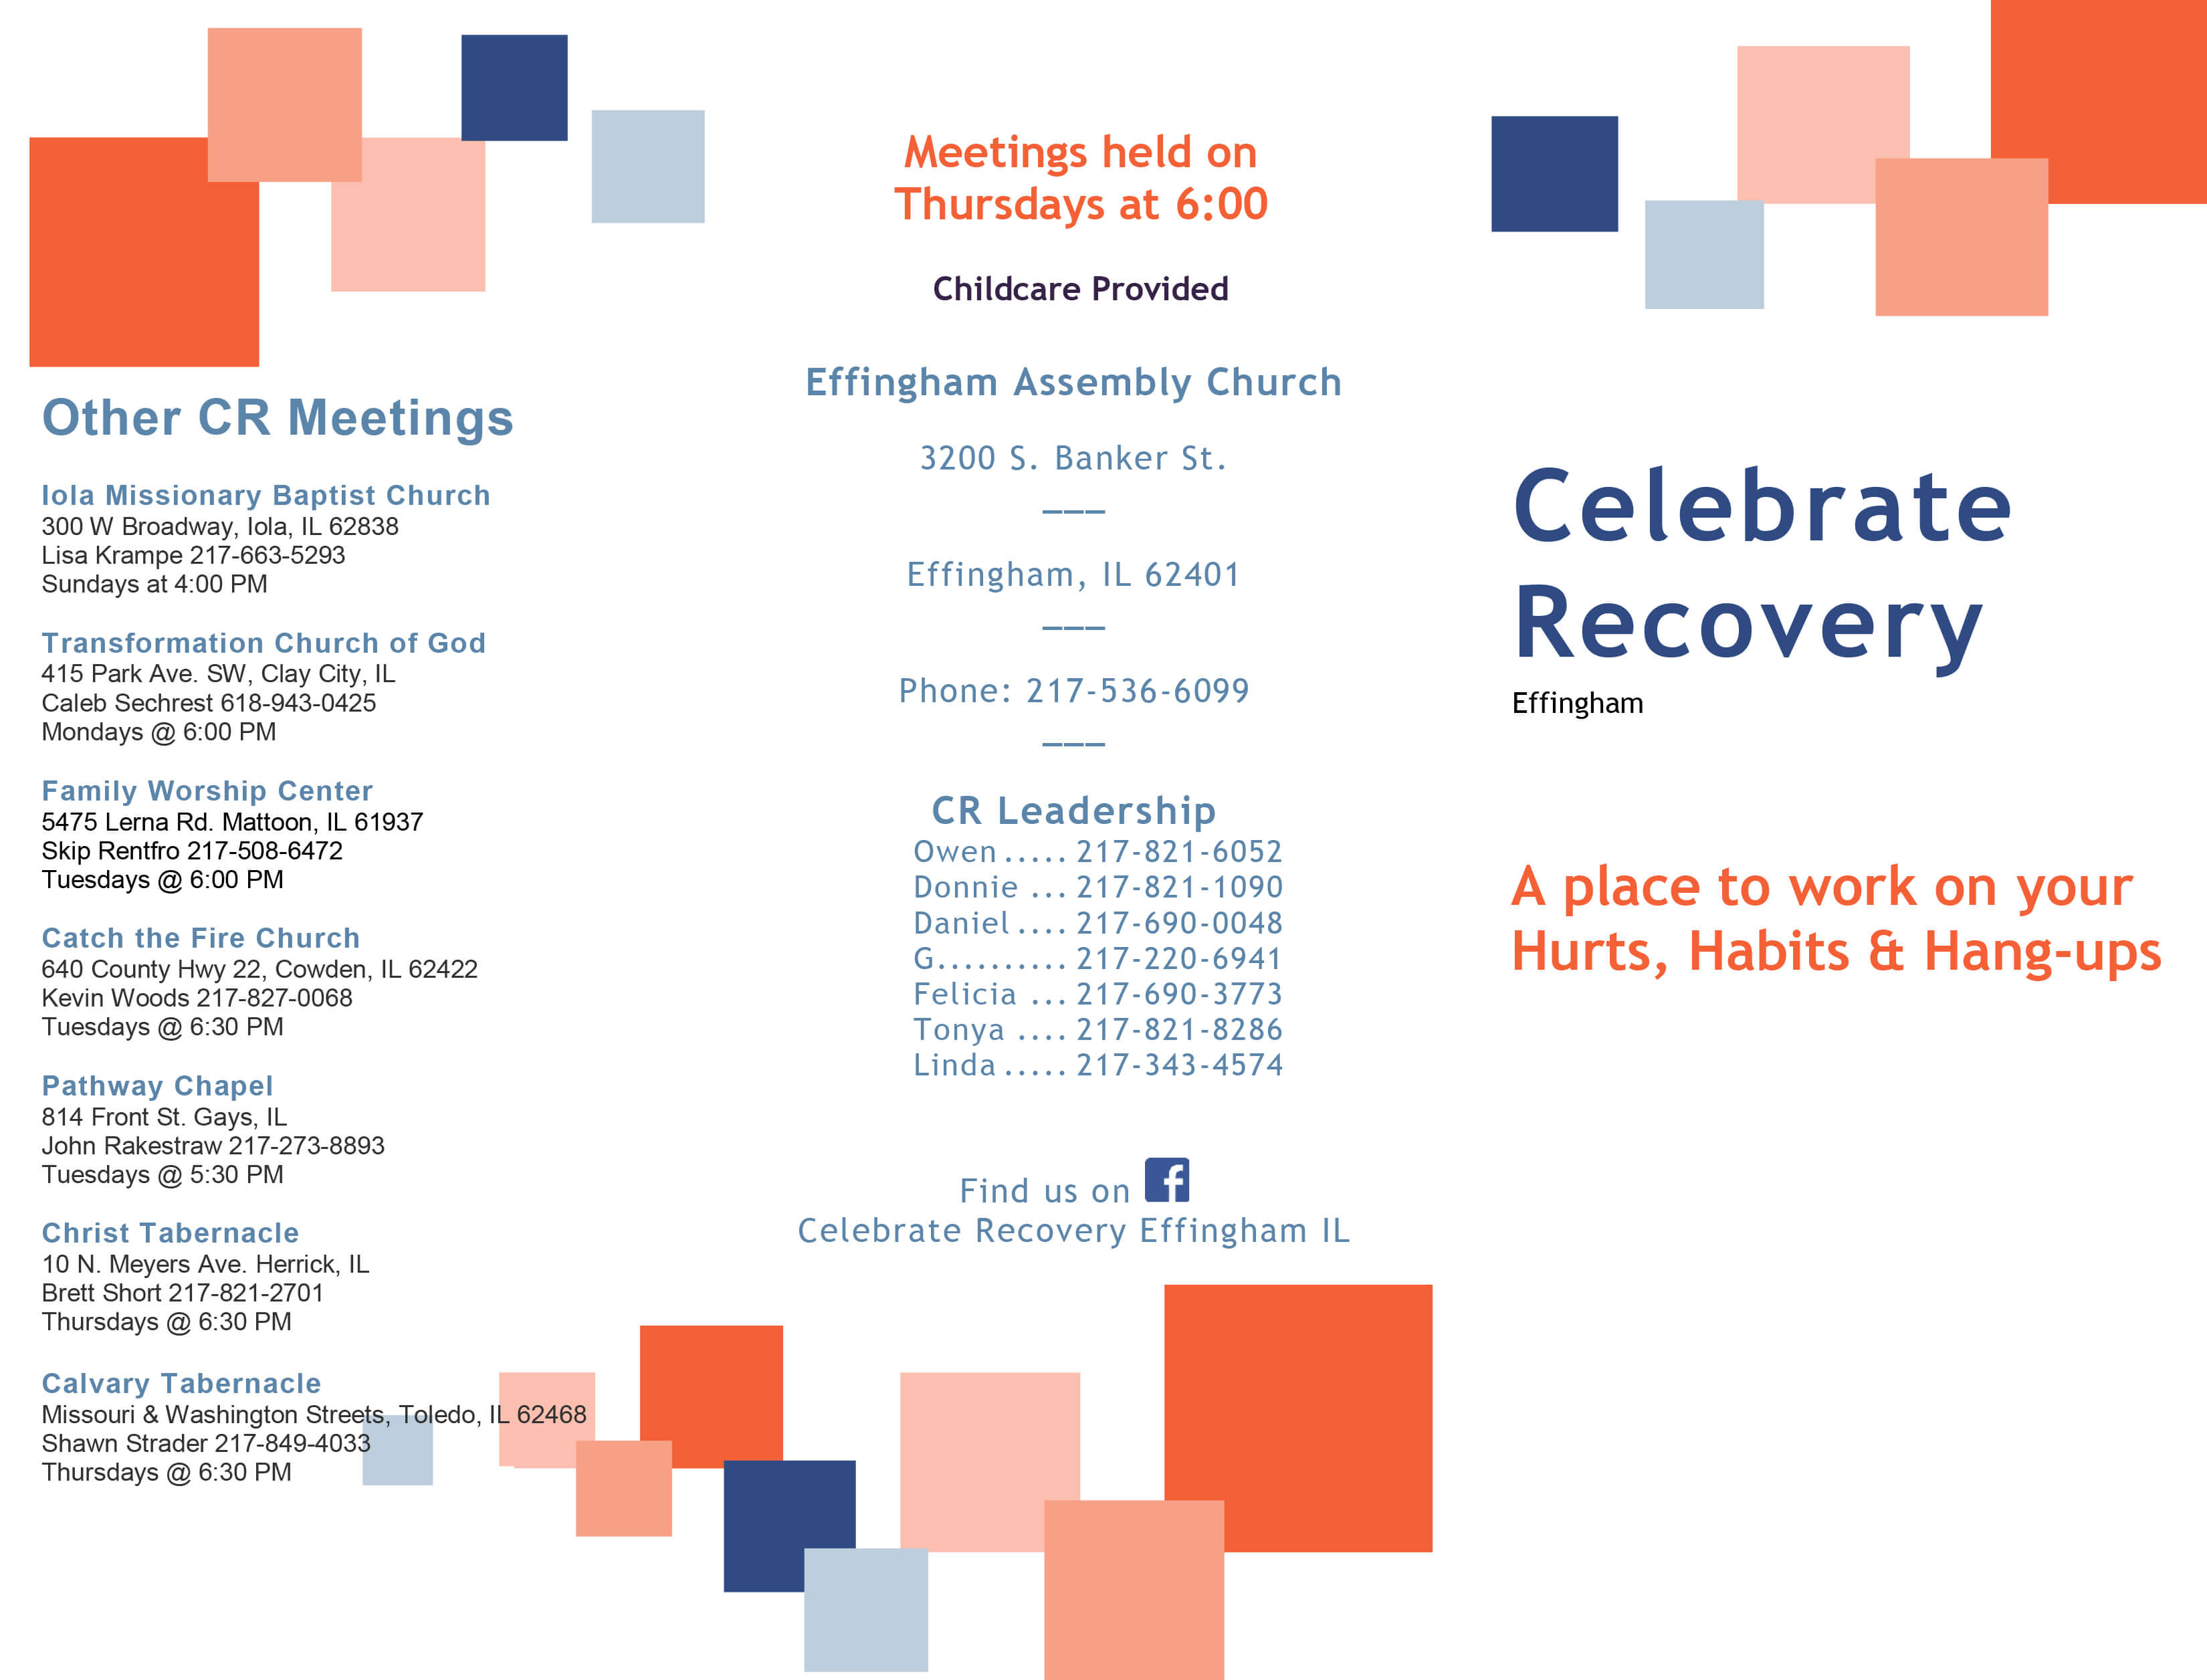 Celebrate Recovery 2019